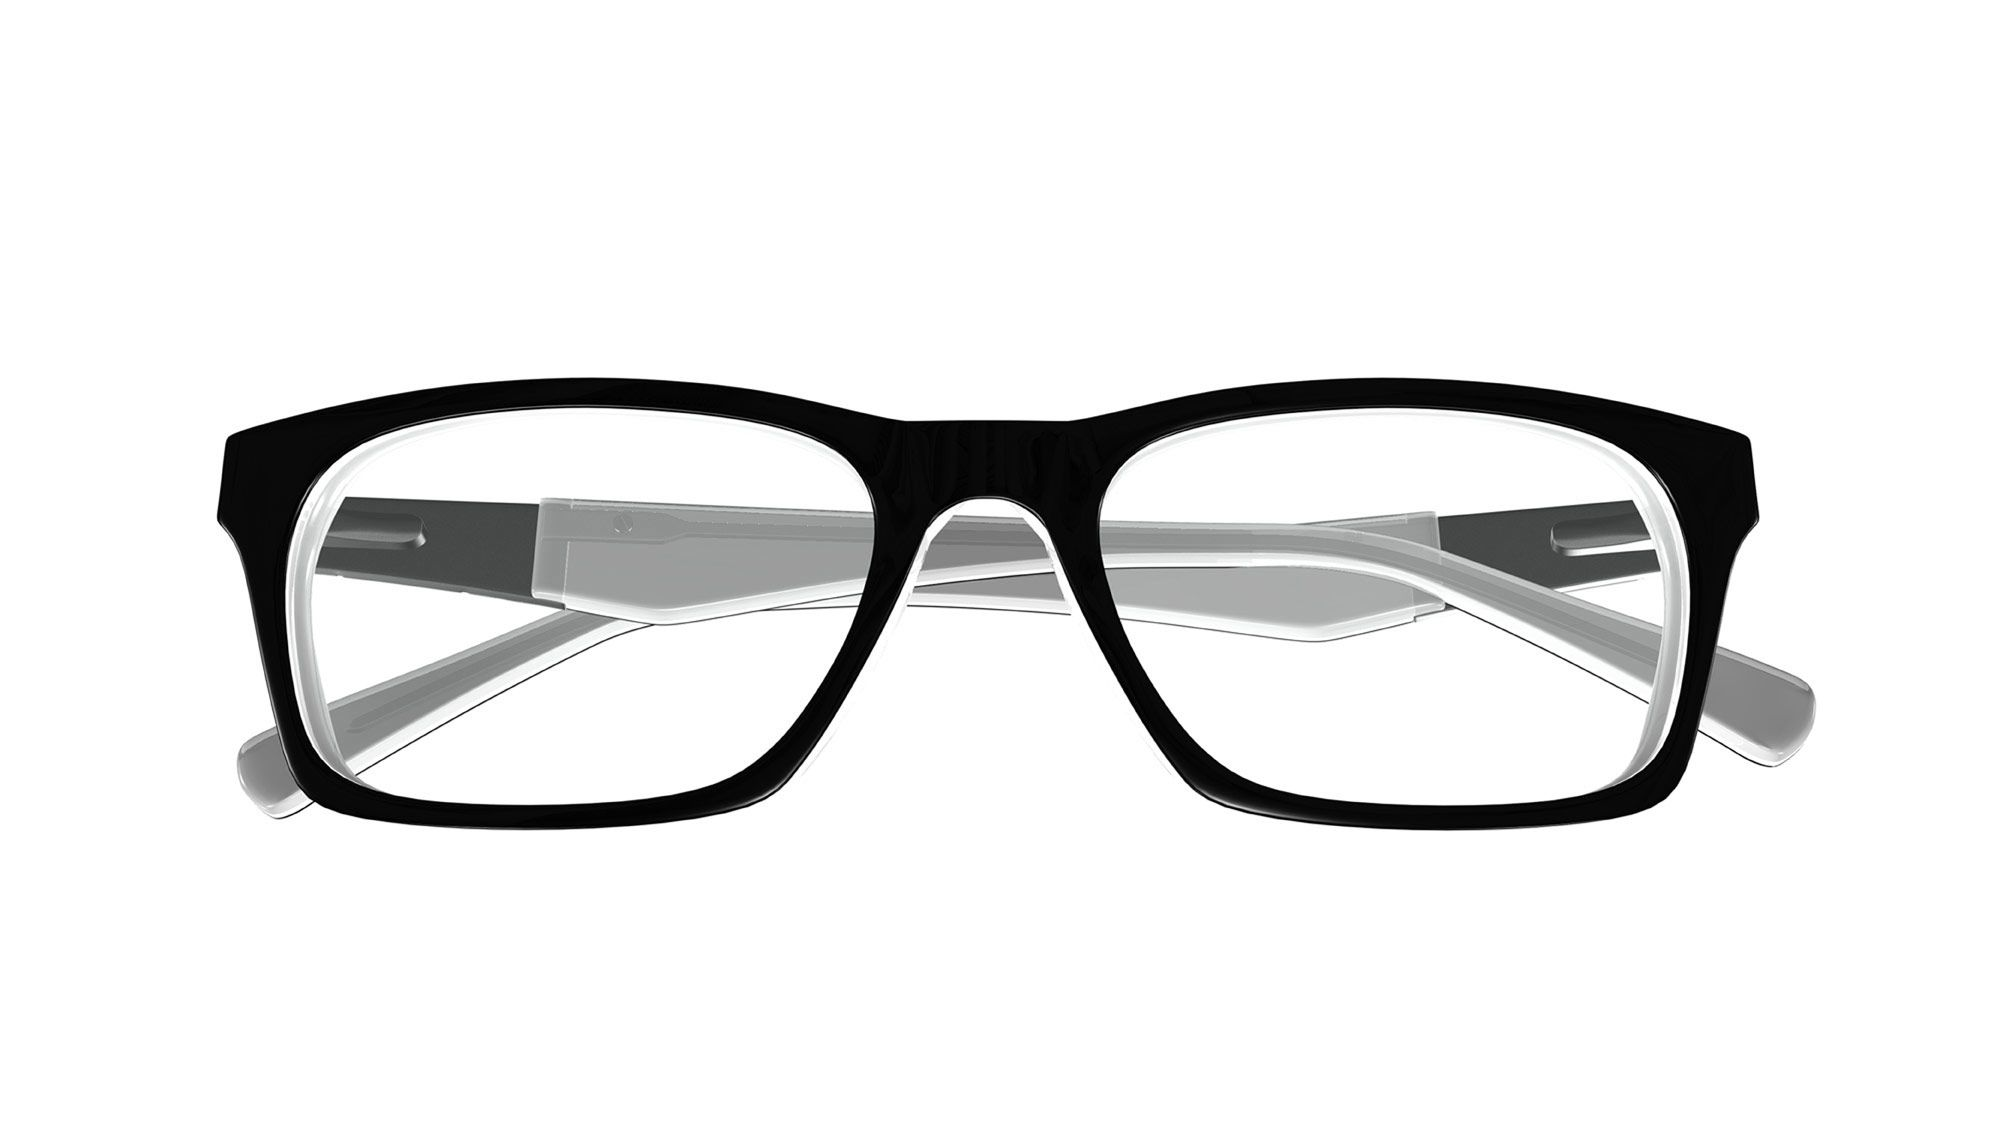 Glasses & Prescription Eyeglasses | Warby ParkerFSA/HSA Funds Accepted· Try On at Home for Free· Eyeglasses & Sunglasses.